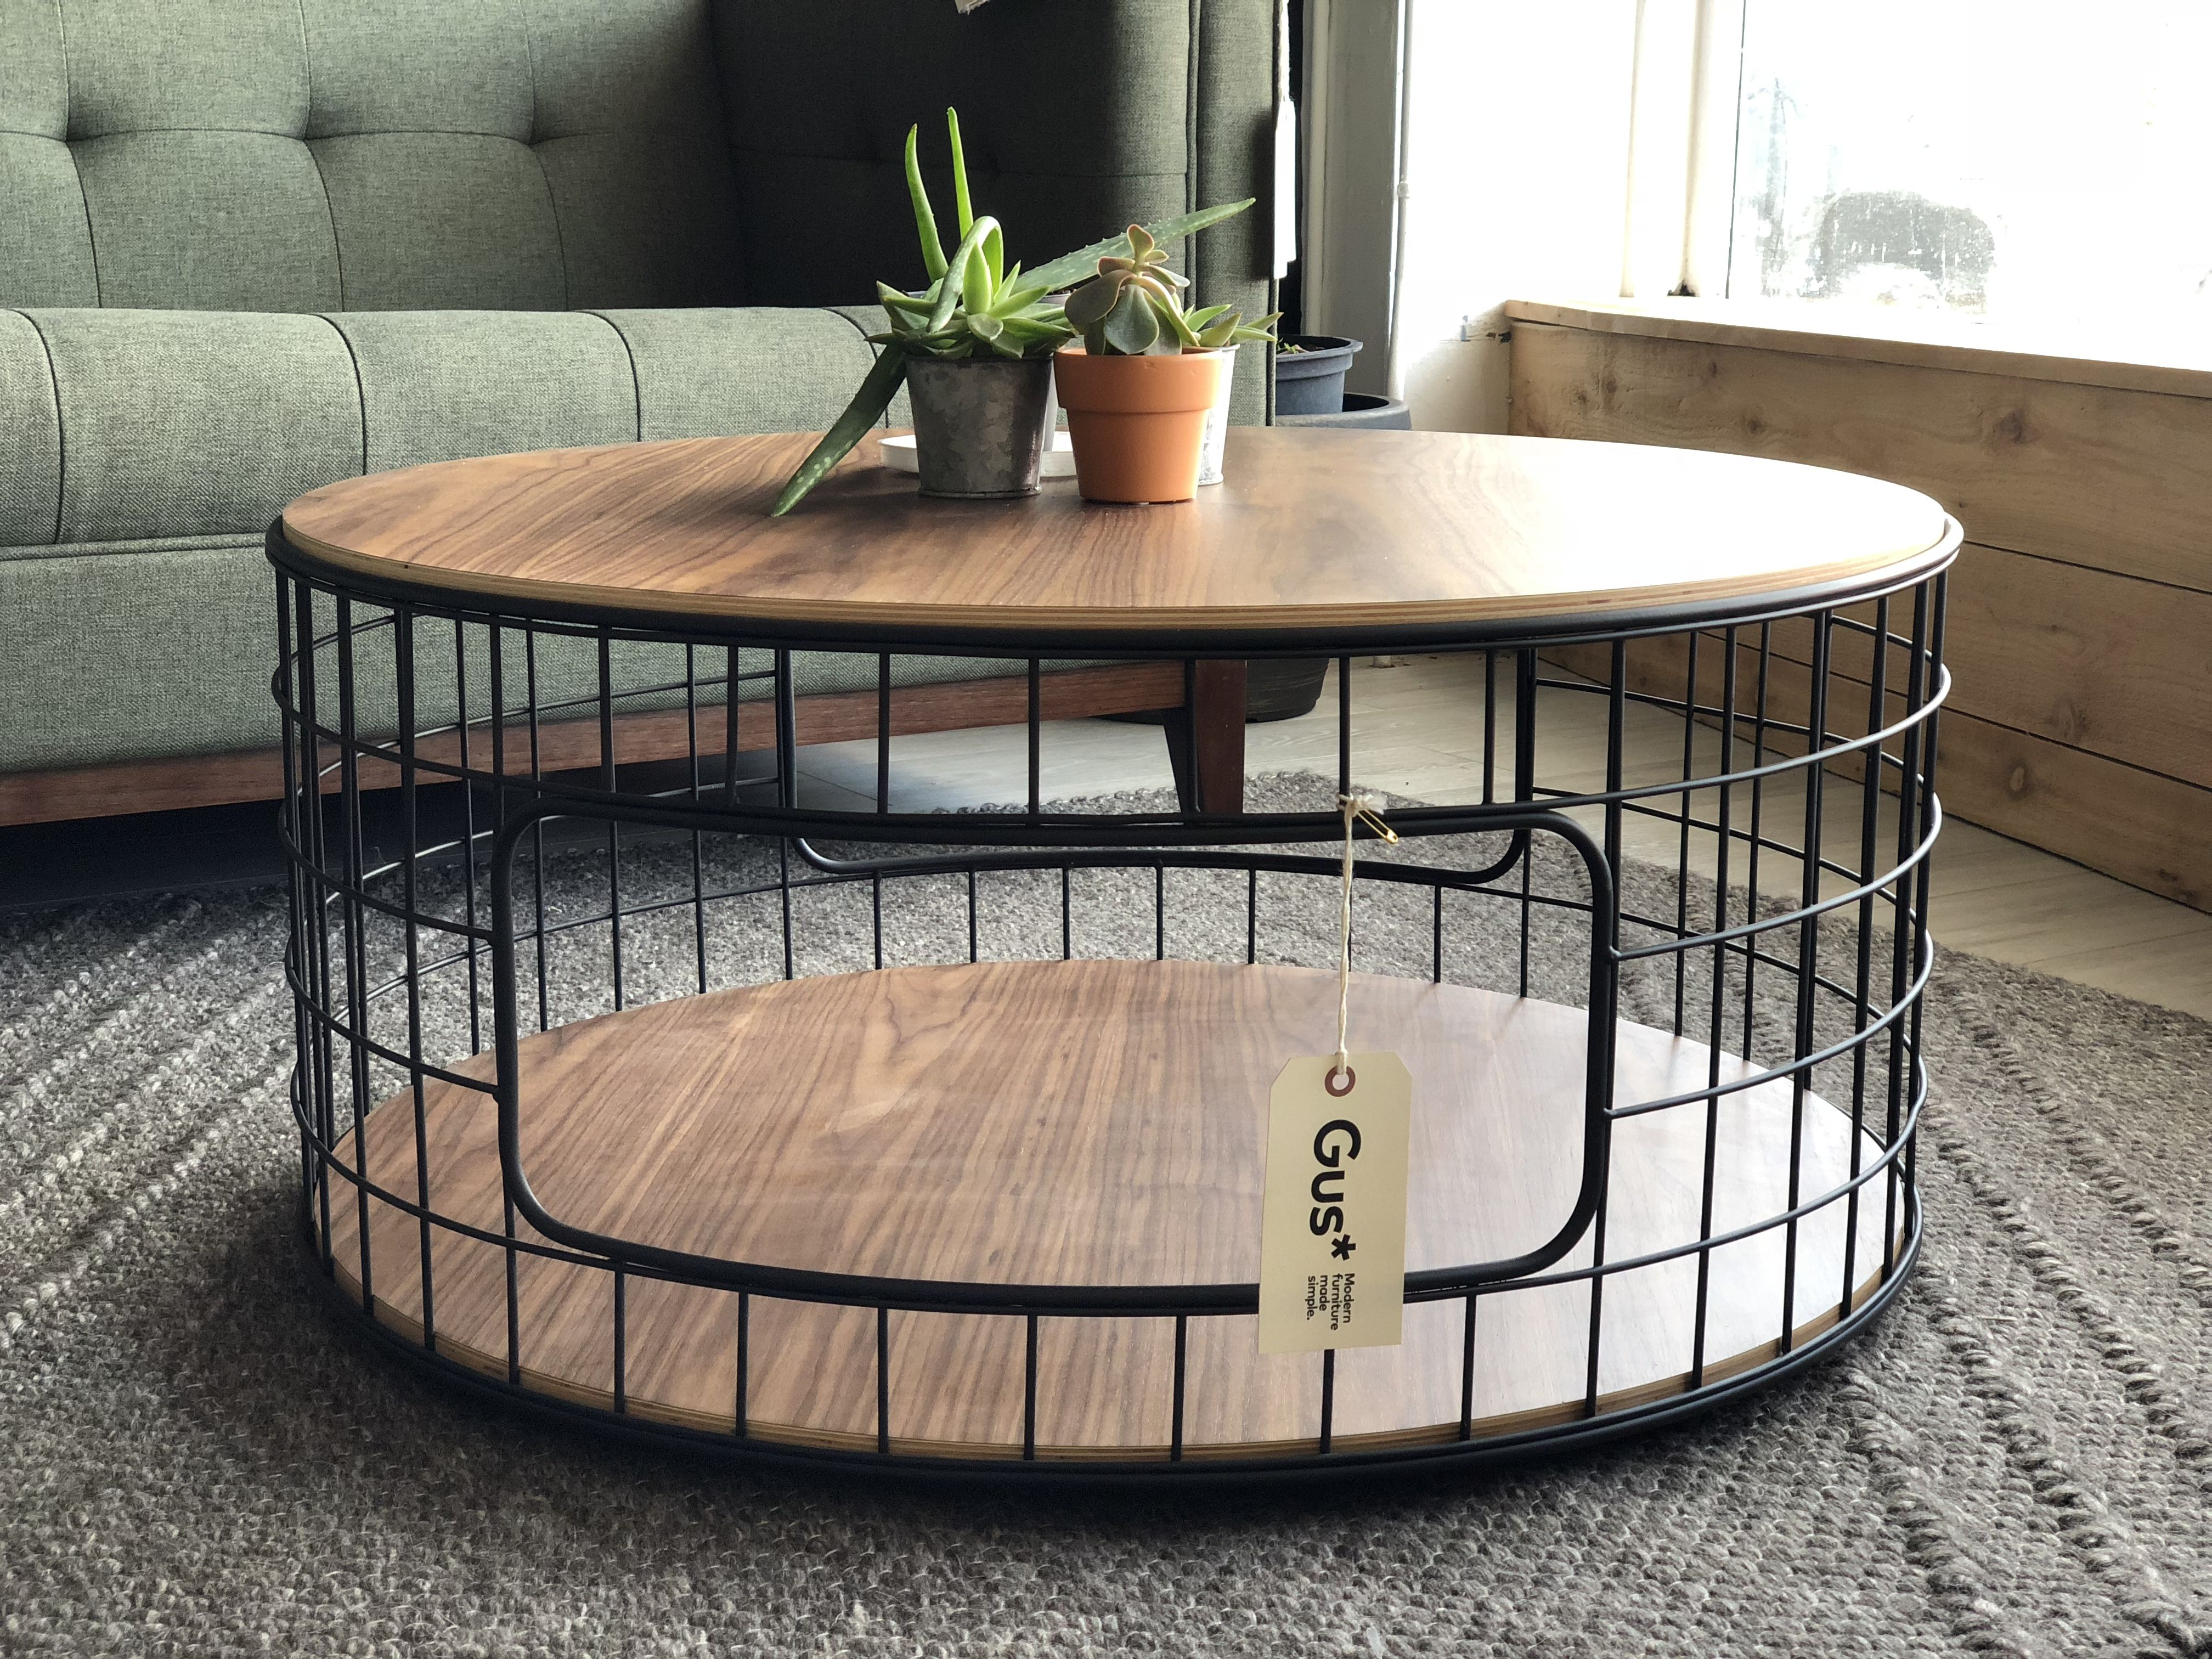 Wireframe Coffee Table Coffee Table Farmhouse Living Room Table Modern Furniture [ 3024 x 4032 Pixel ]